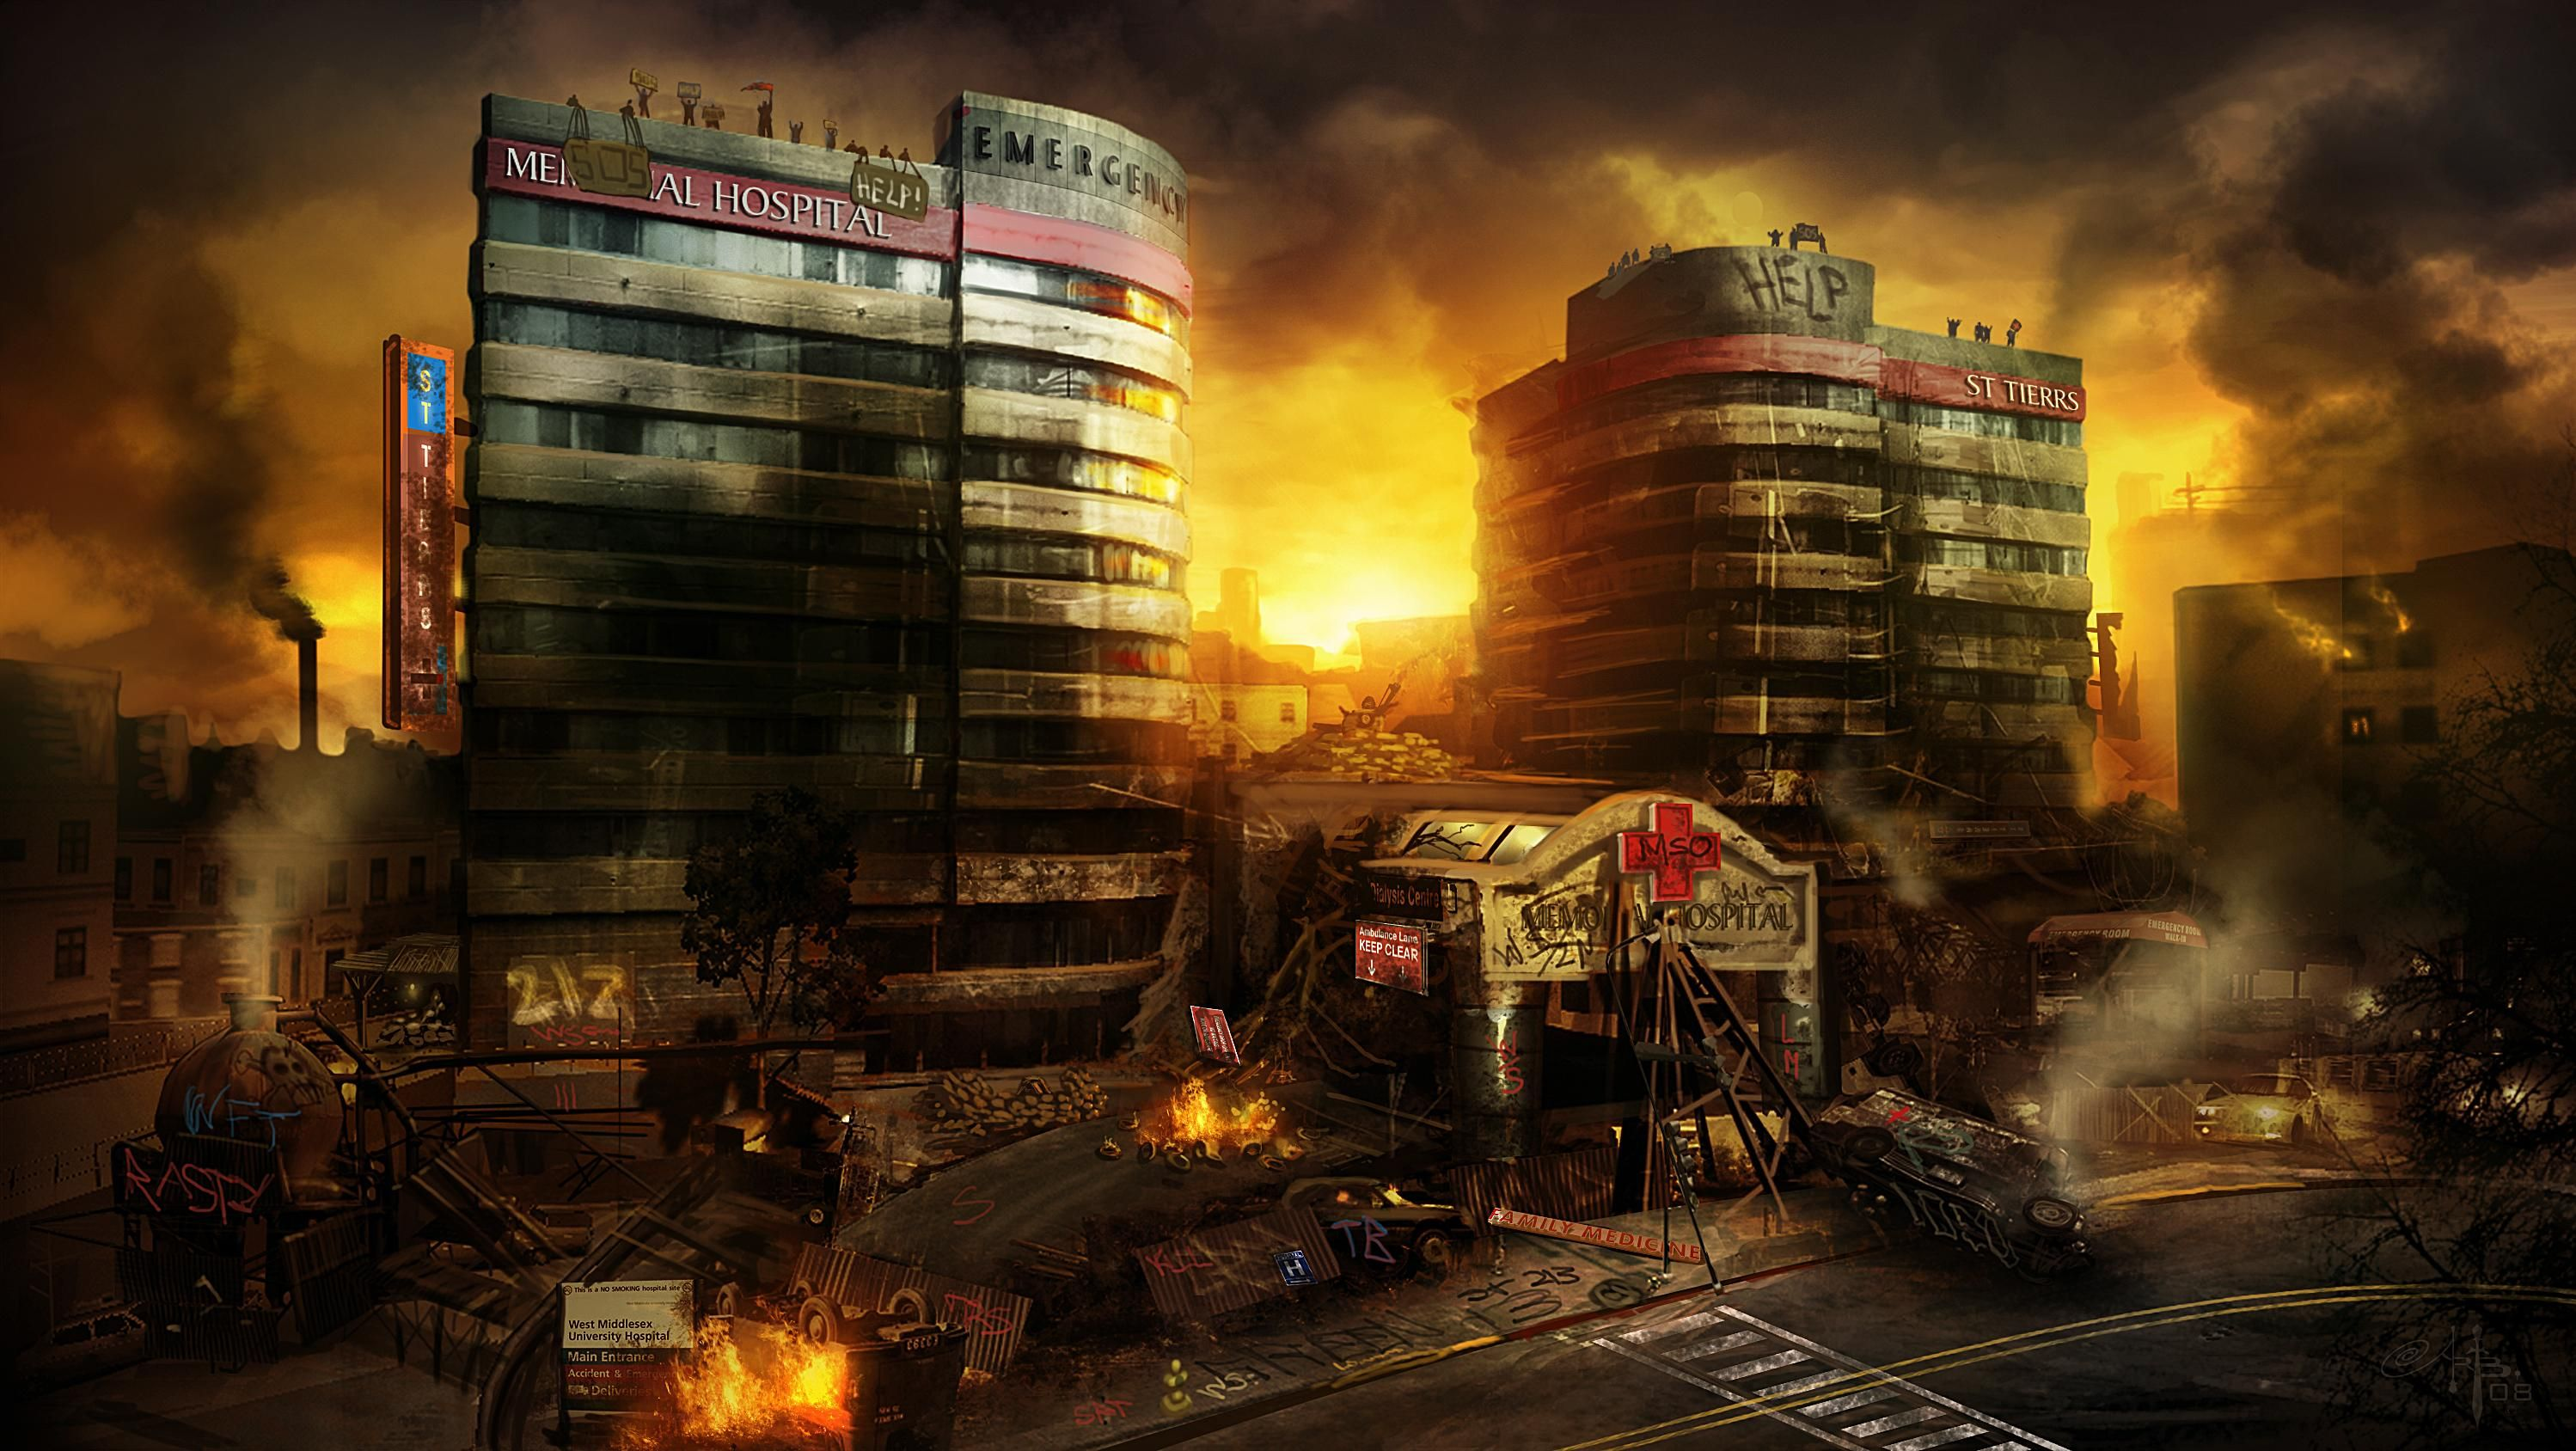 Digital Art General Hd Wallpapers Page 20 World Of Darkness Post Apocalyptic Apocalyptic